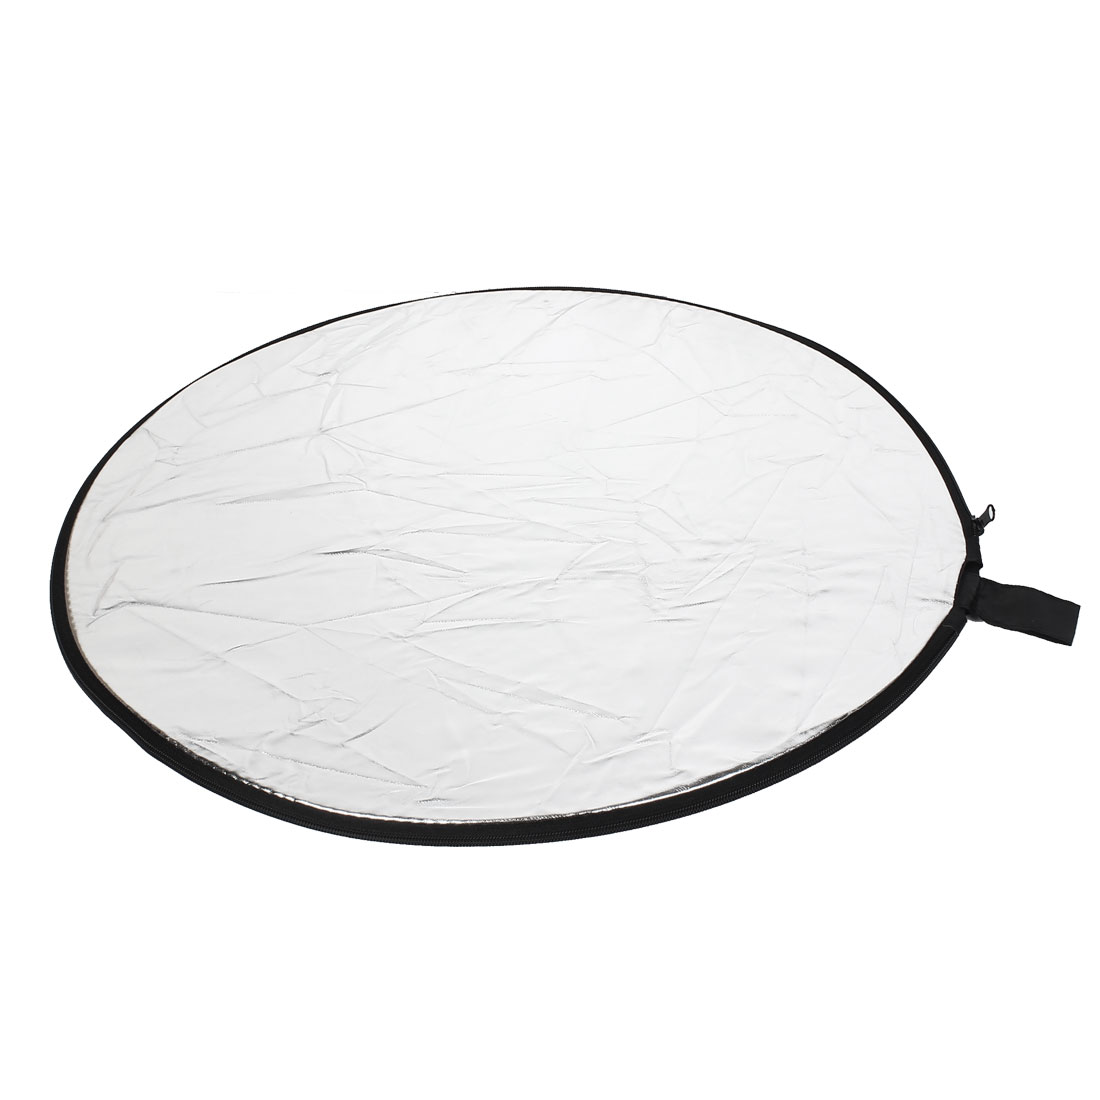 "110cm 43"" Photo Studio Collapsible Multi Disc 5 in 1 Light Reflector"